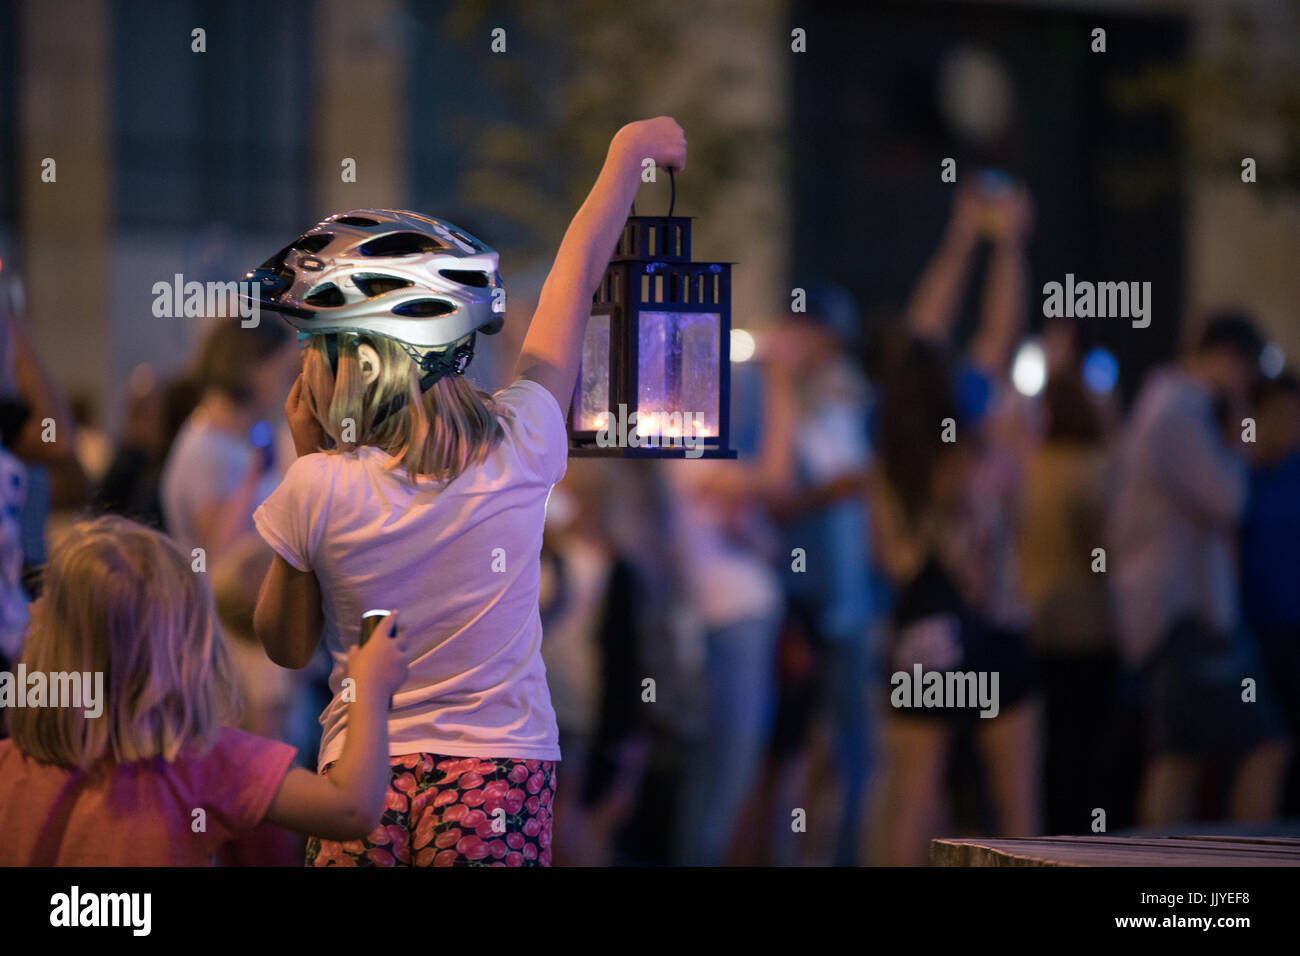 Poznan, Poland. 20th July, 2017. Children and youth on protest. Lights for judiciary - protest against violation - Stock Image